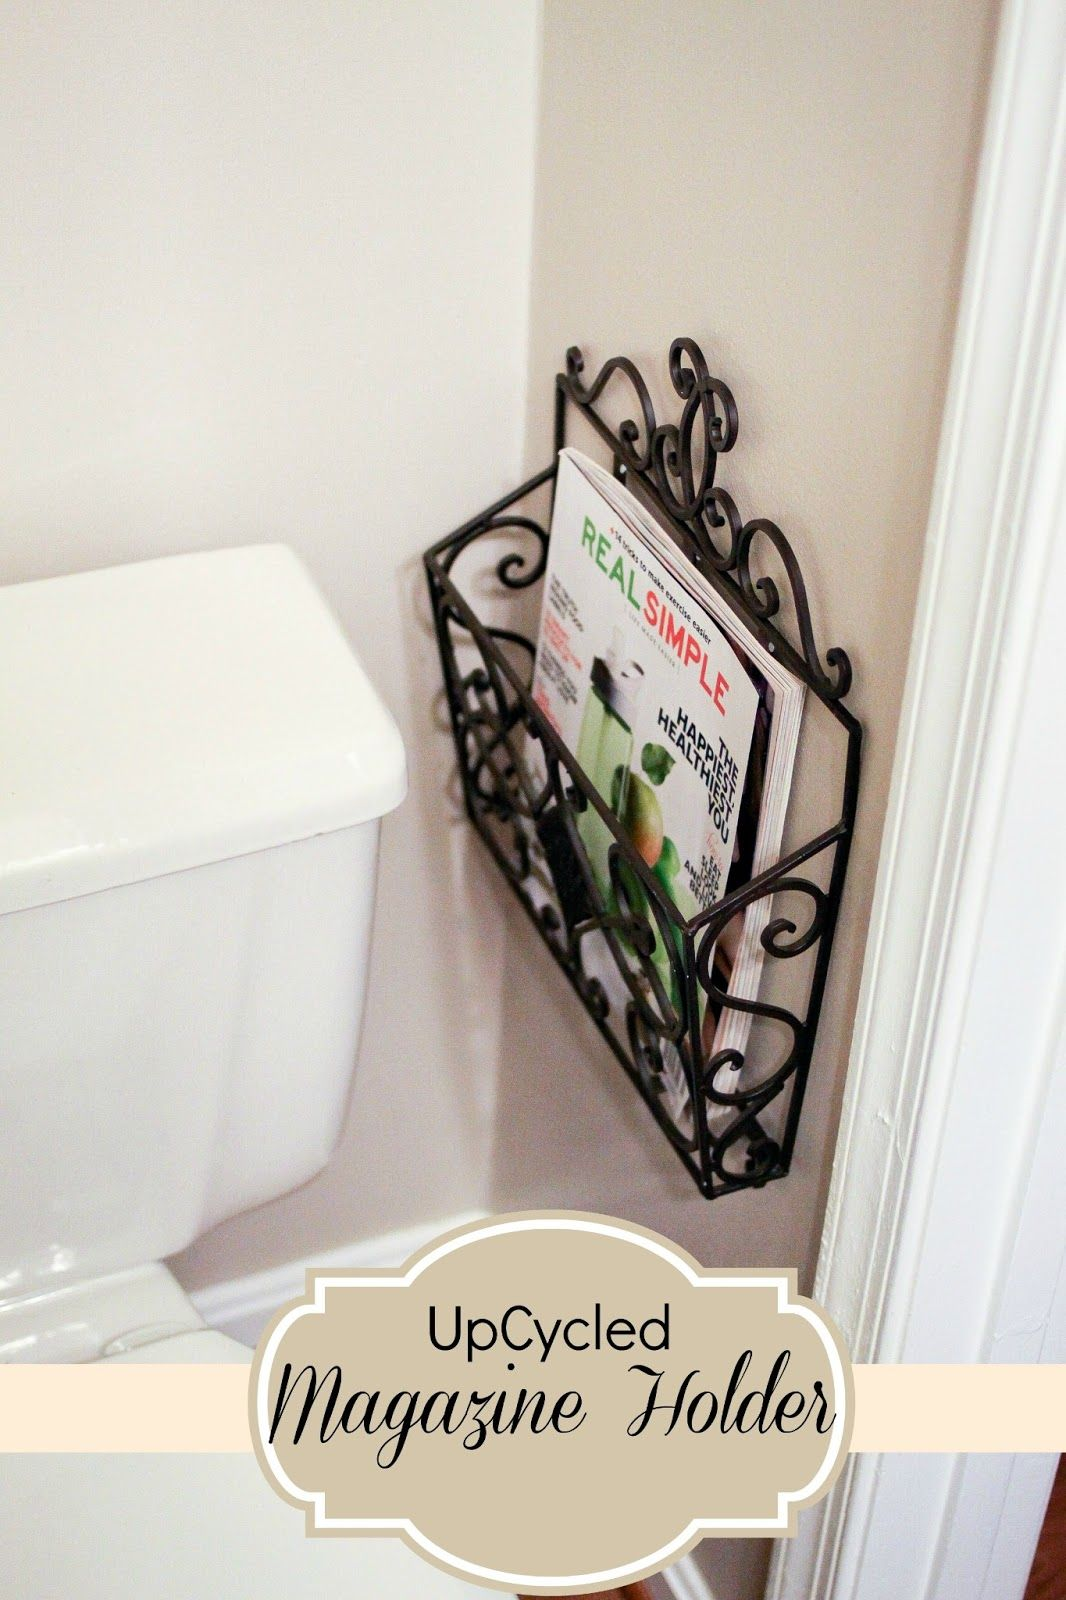 Mail Carrier Turned Magazine Holder Perfect For Small Powder Rooms And Little Floor E